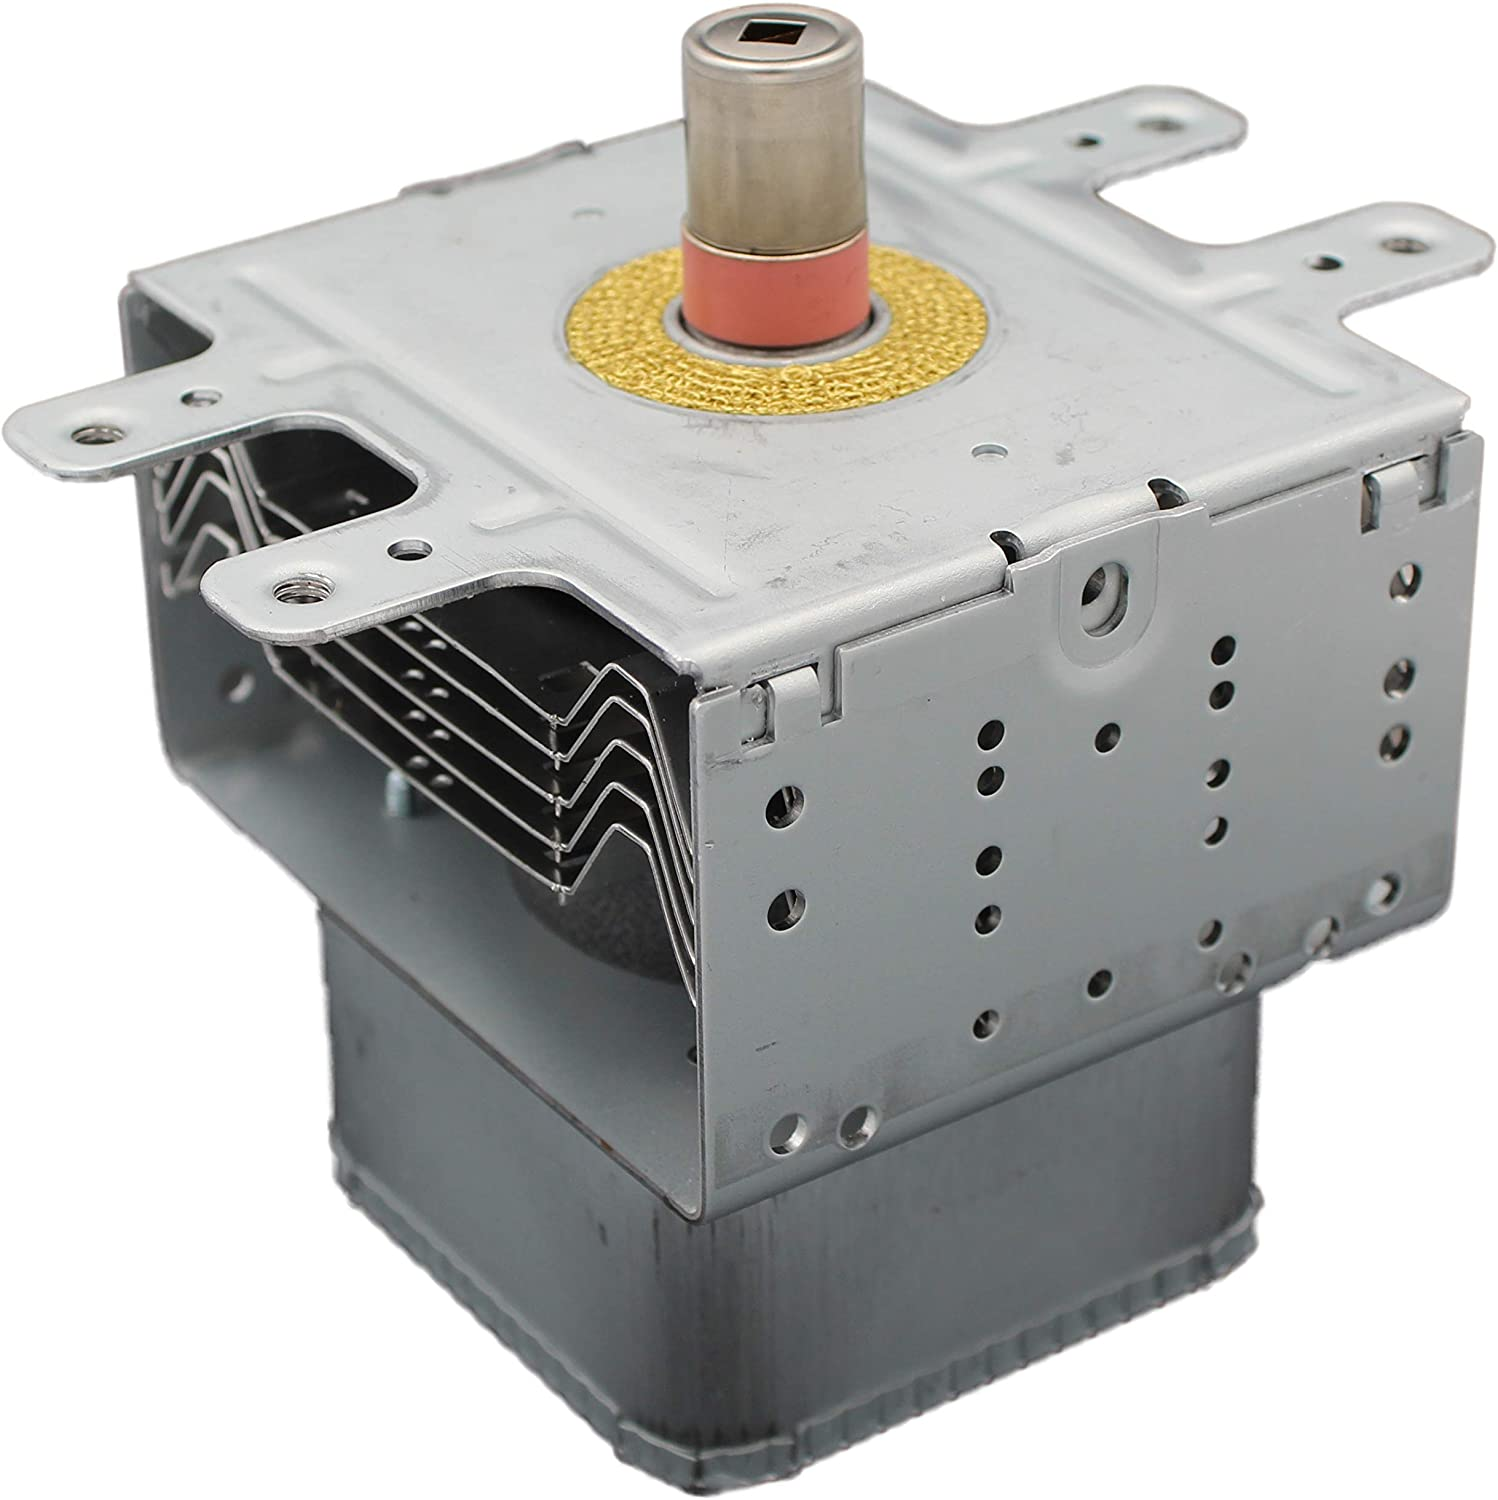 Supplying Demand SD0259 Microwave Magnetron Compatible with Whirlpool Fits AP5183463 0M75